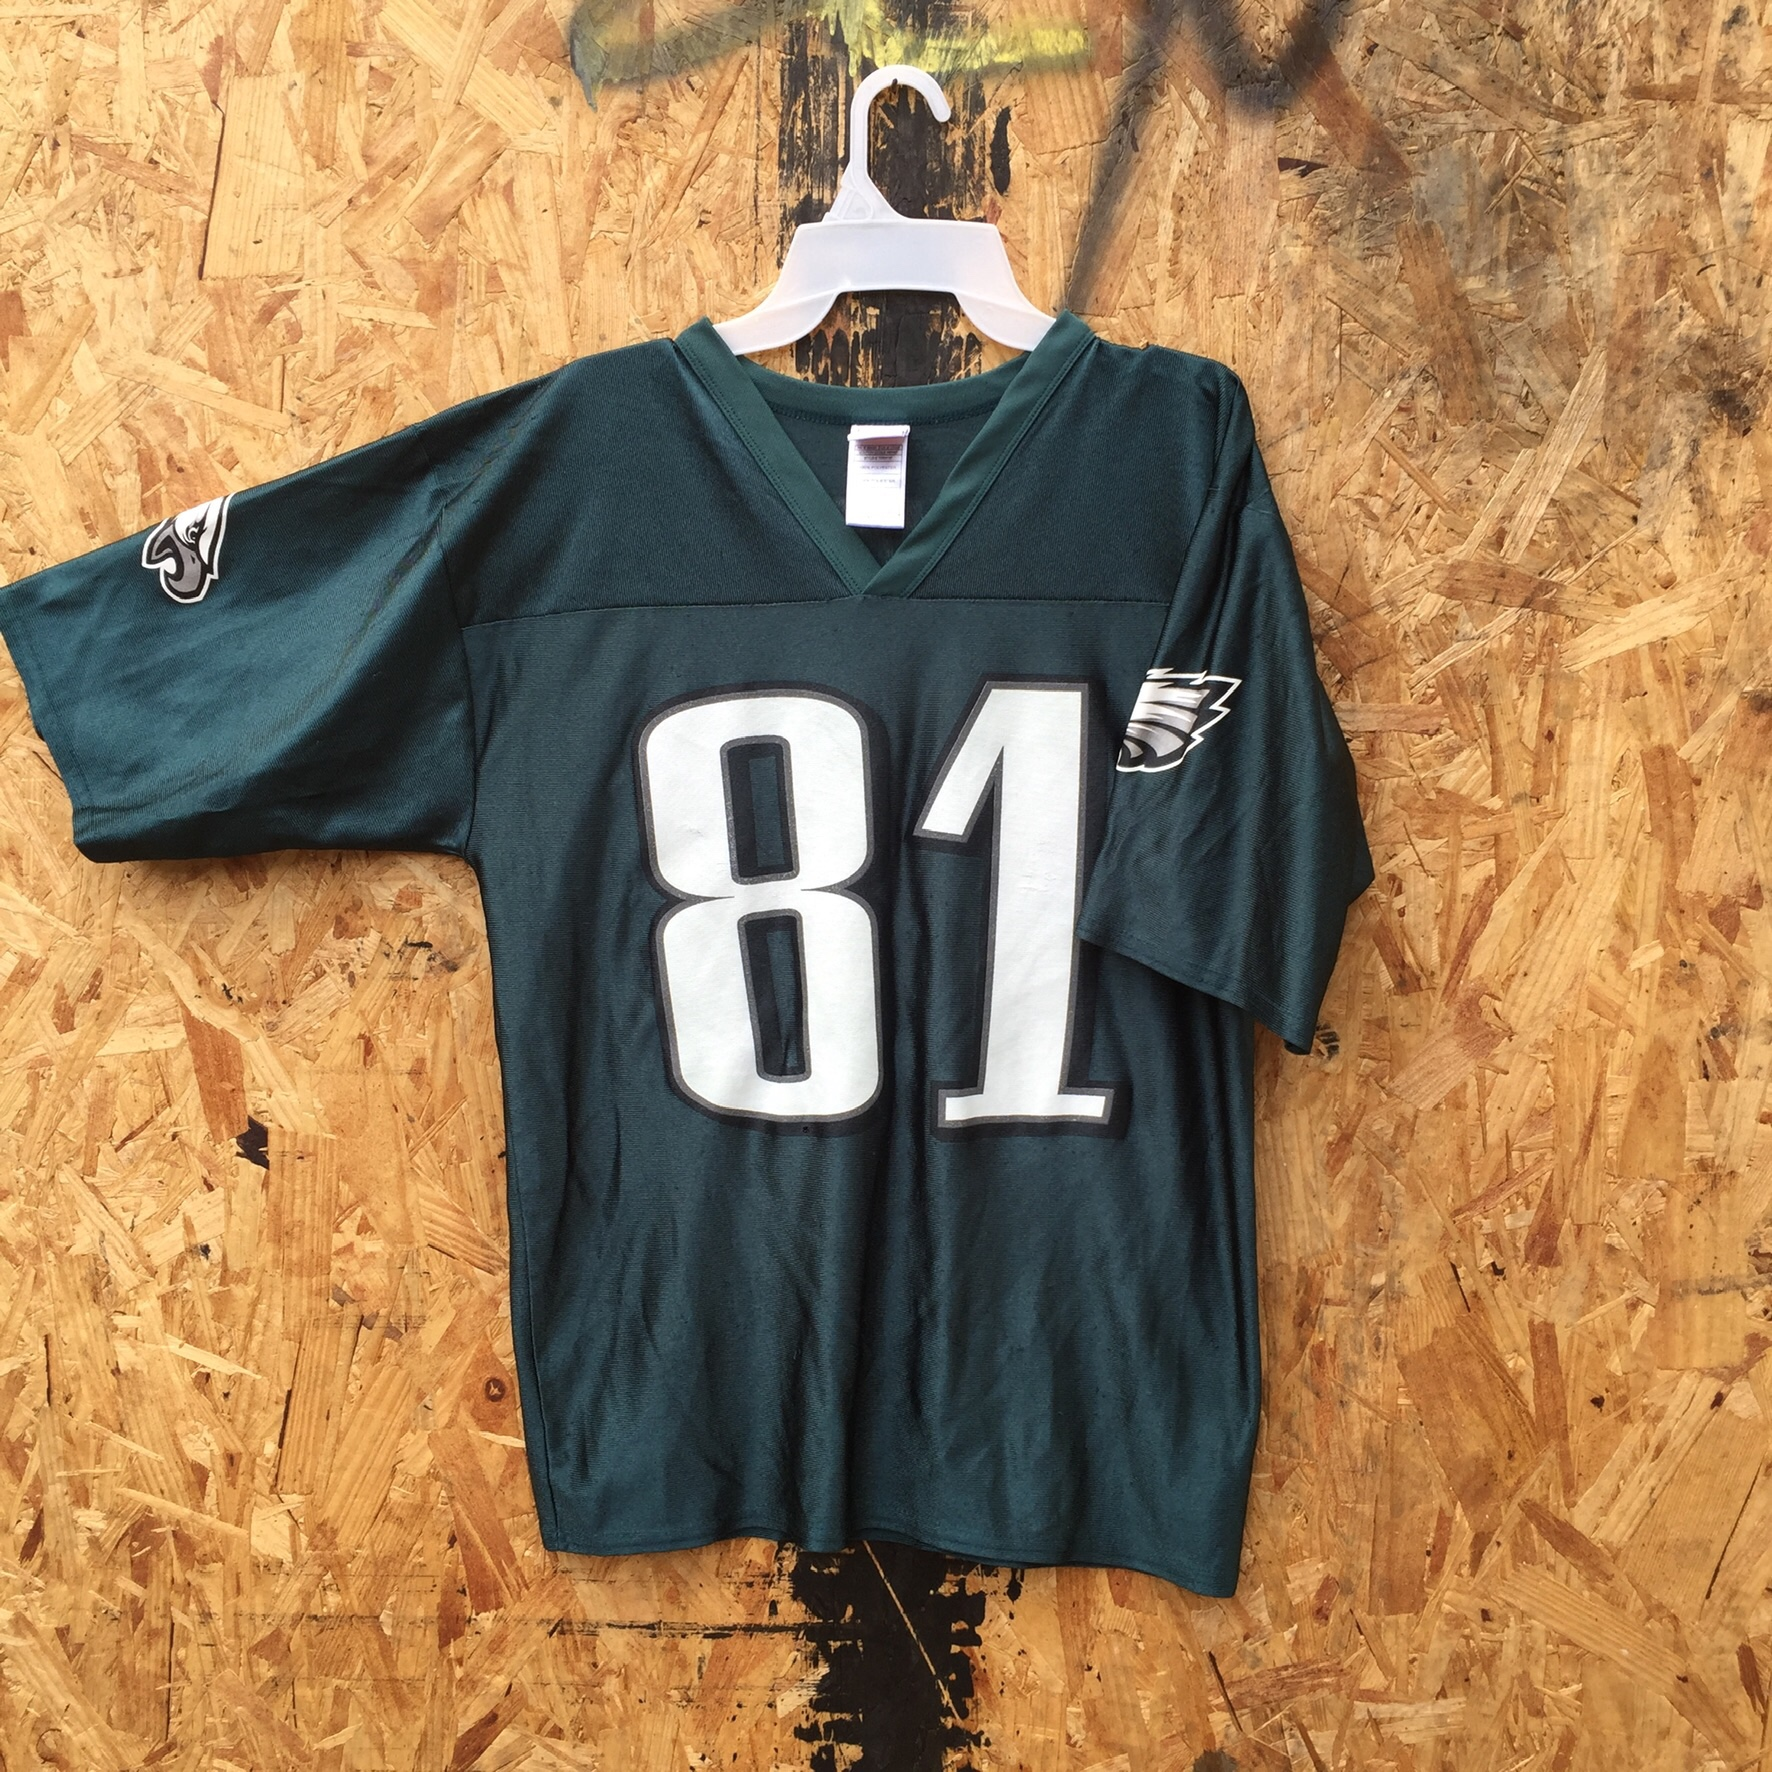 finest selection 9035e 33fe4 Nice Terrell Owens eagles jersey in medium, this is... - Depop